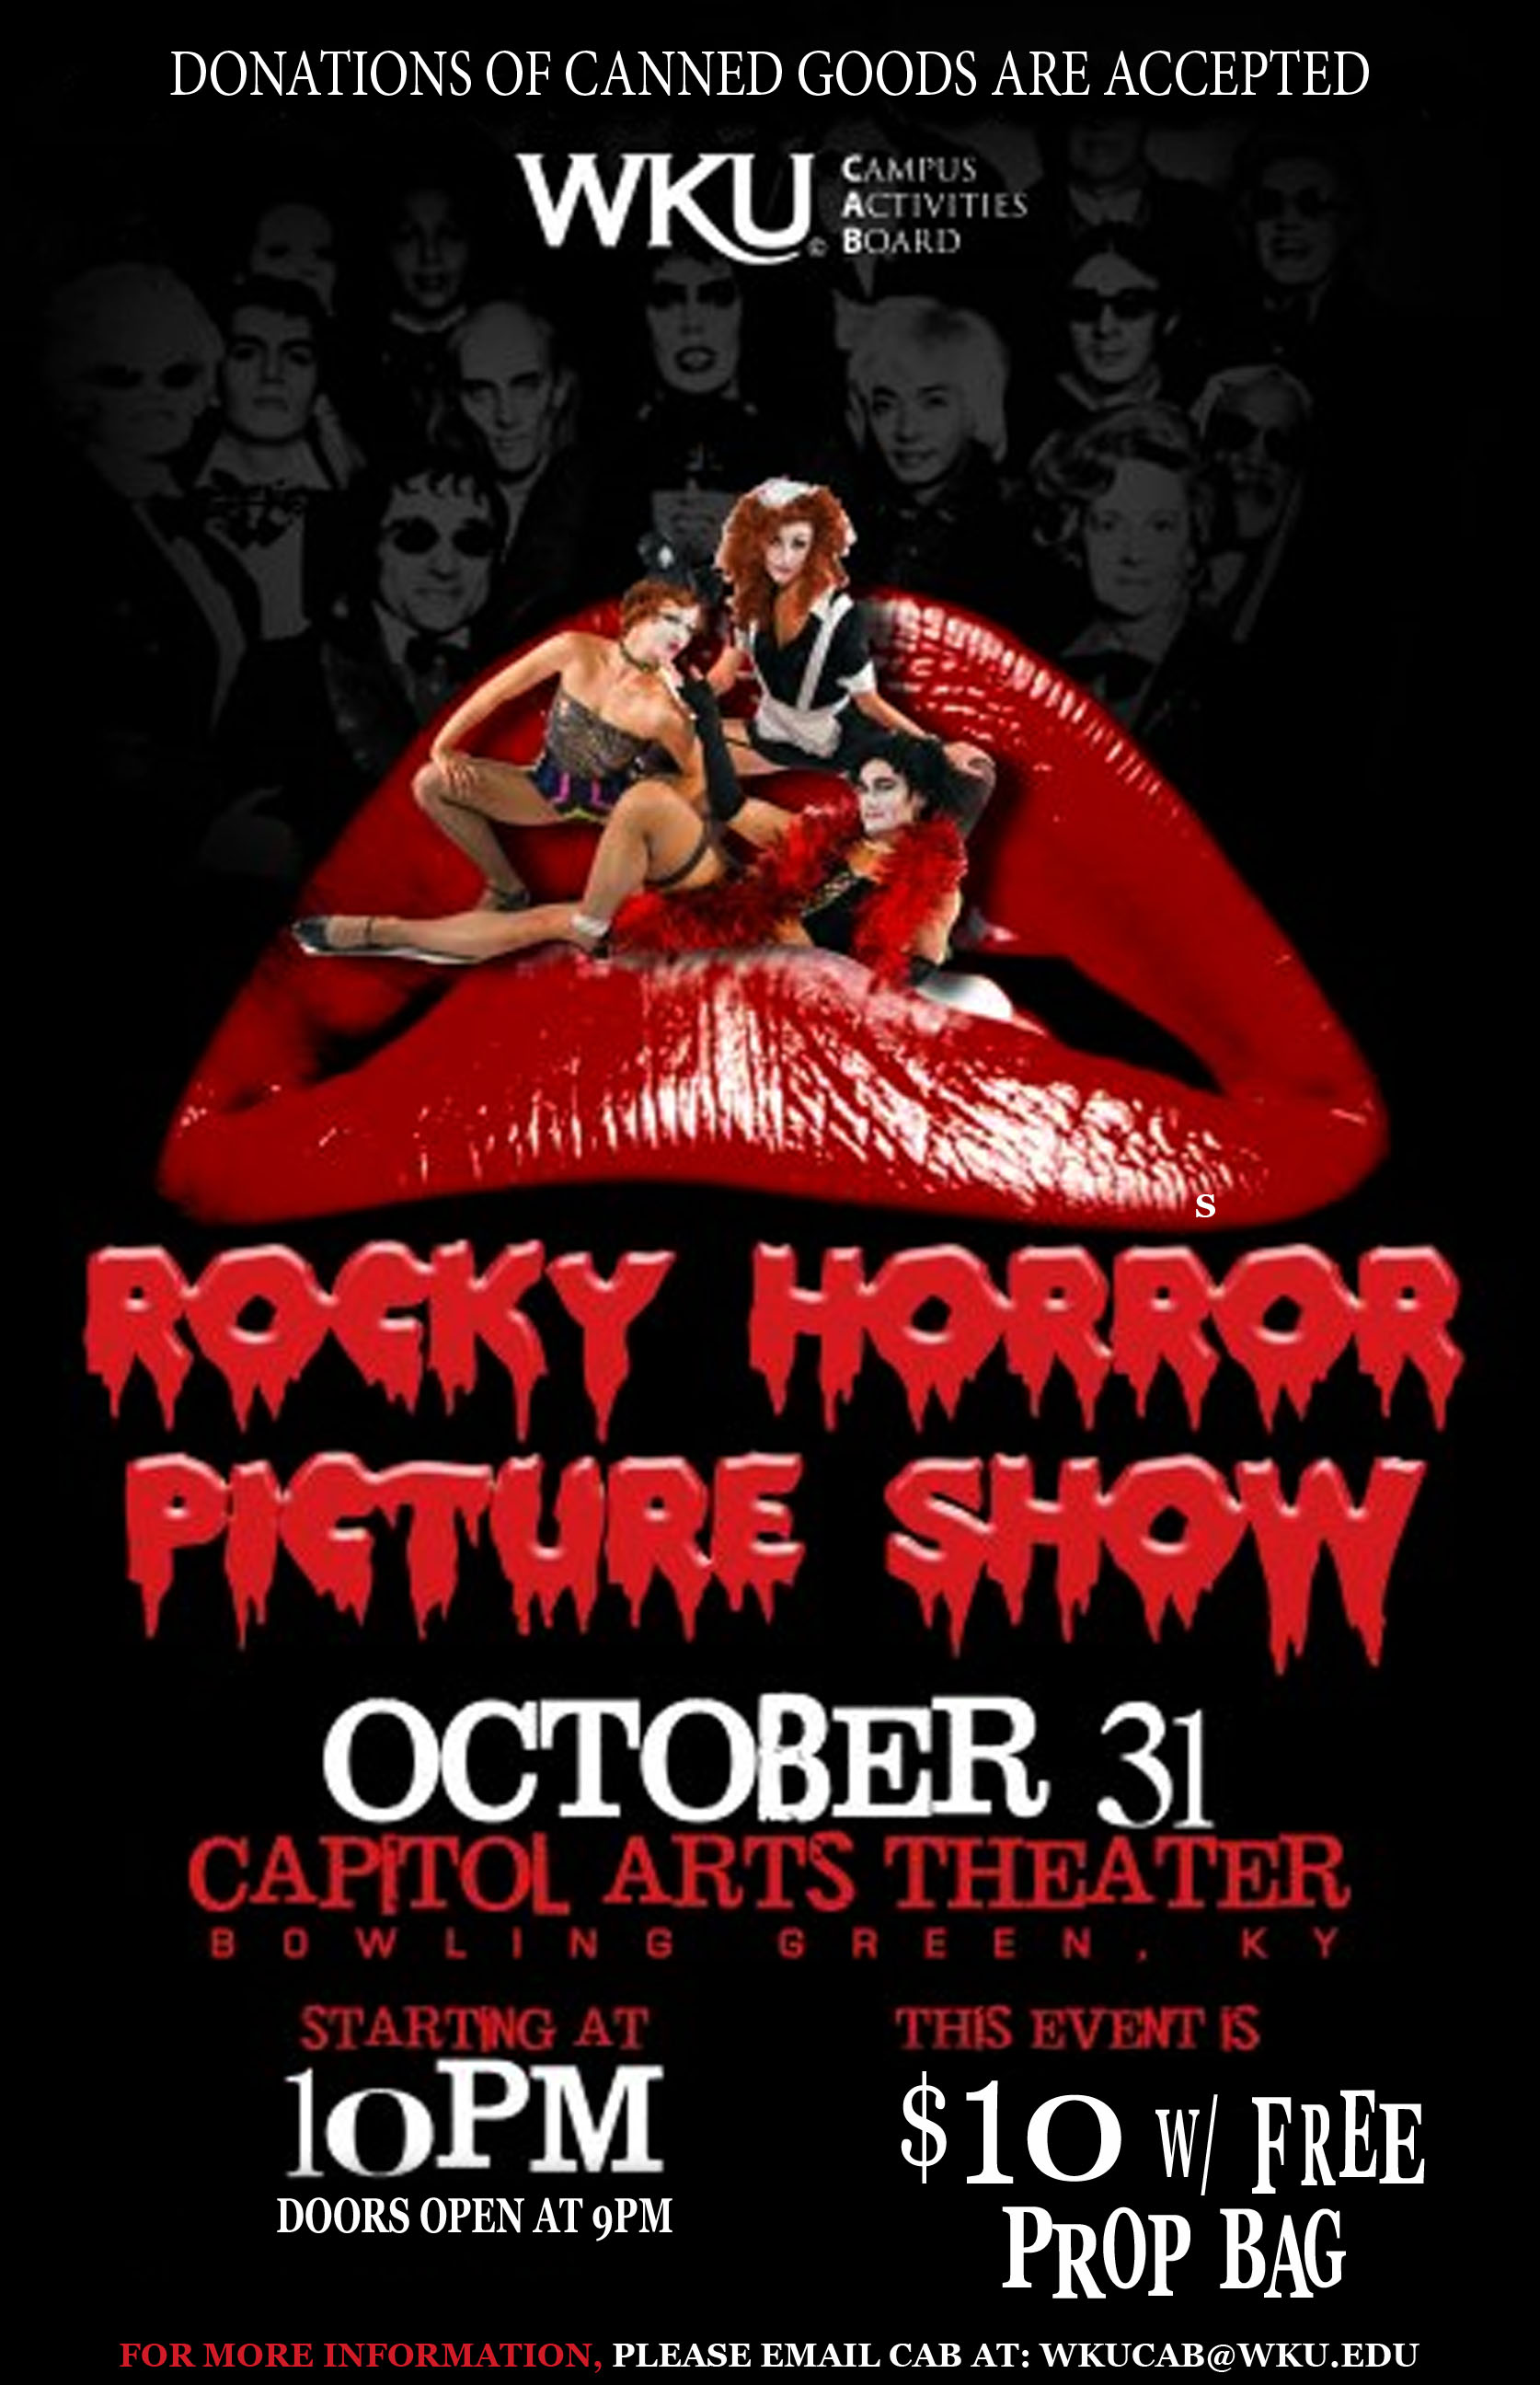 Rocky horror picture show - 2 7